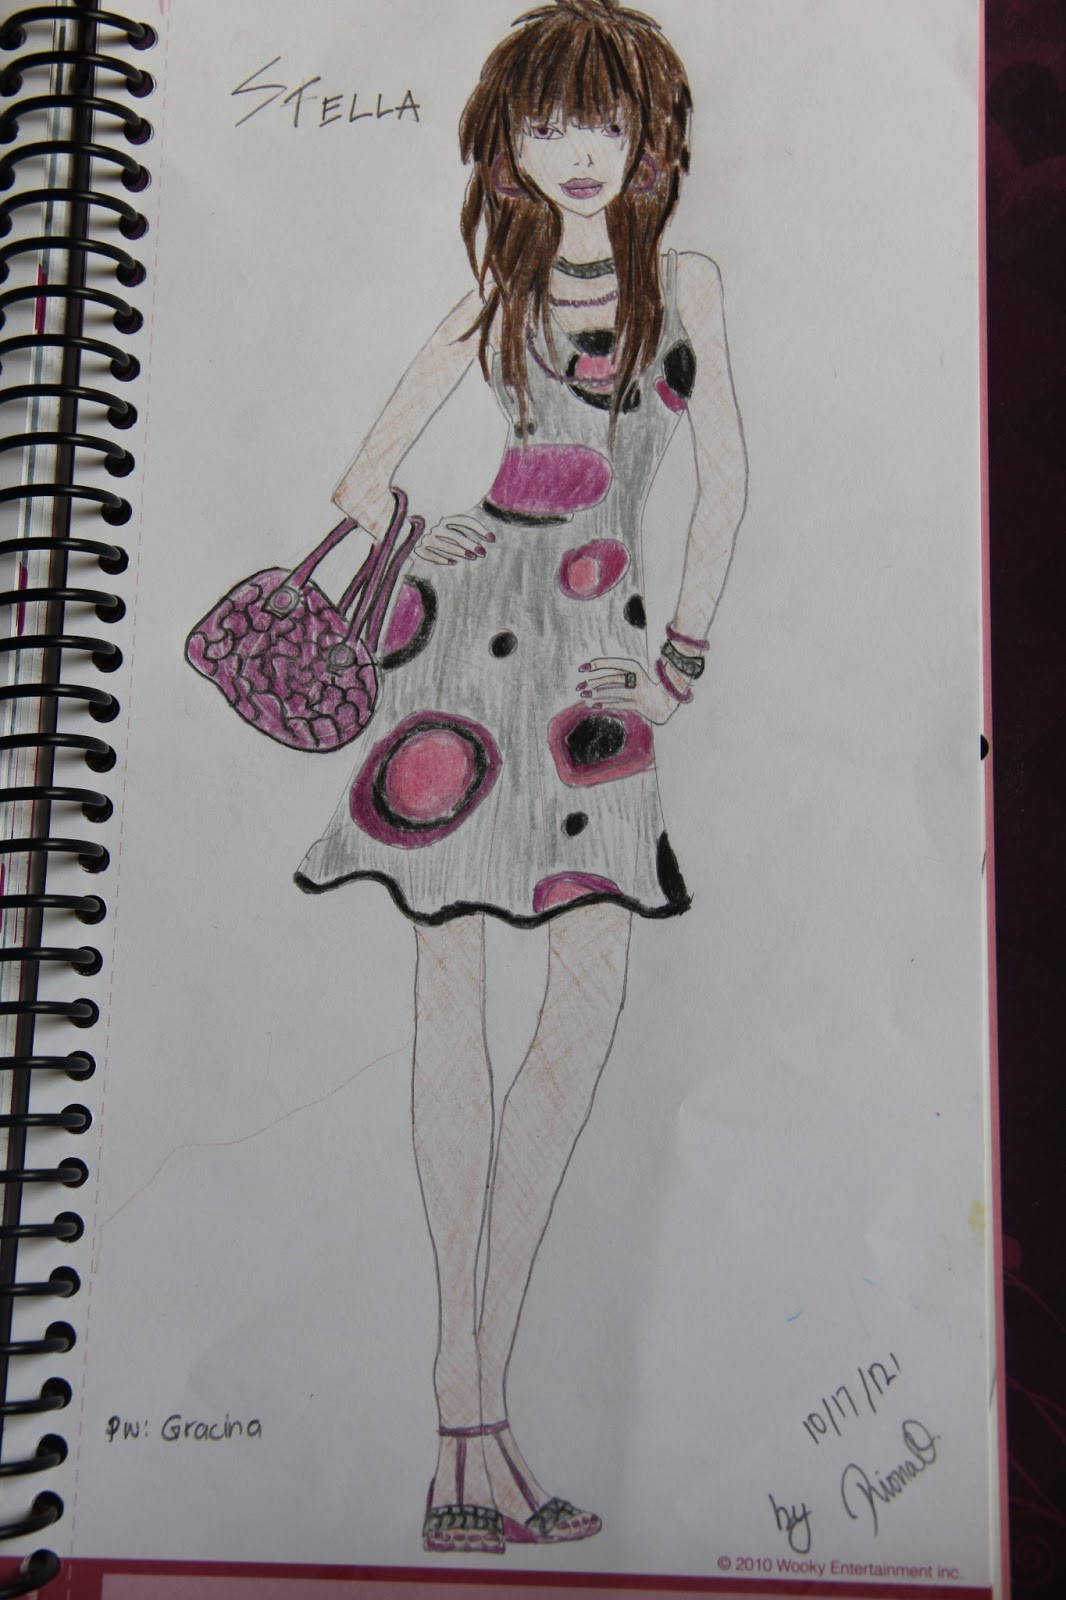 Riona 39 S A K A Amorina Pages Style Me Up Designer Studio Pink And Black